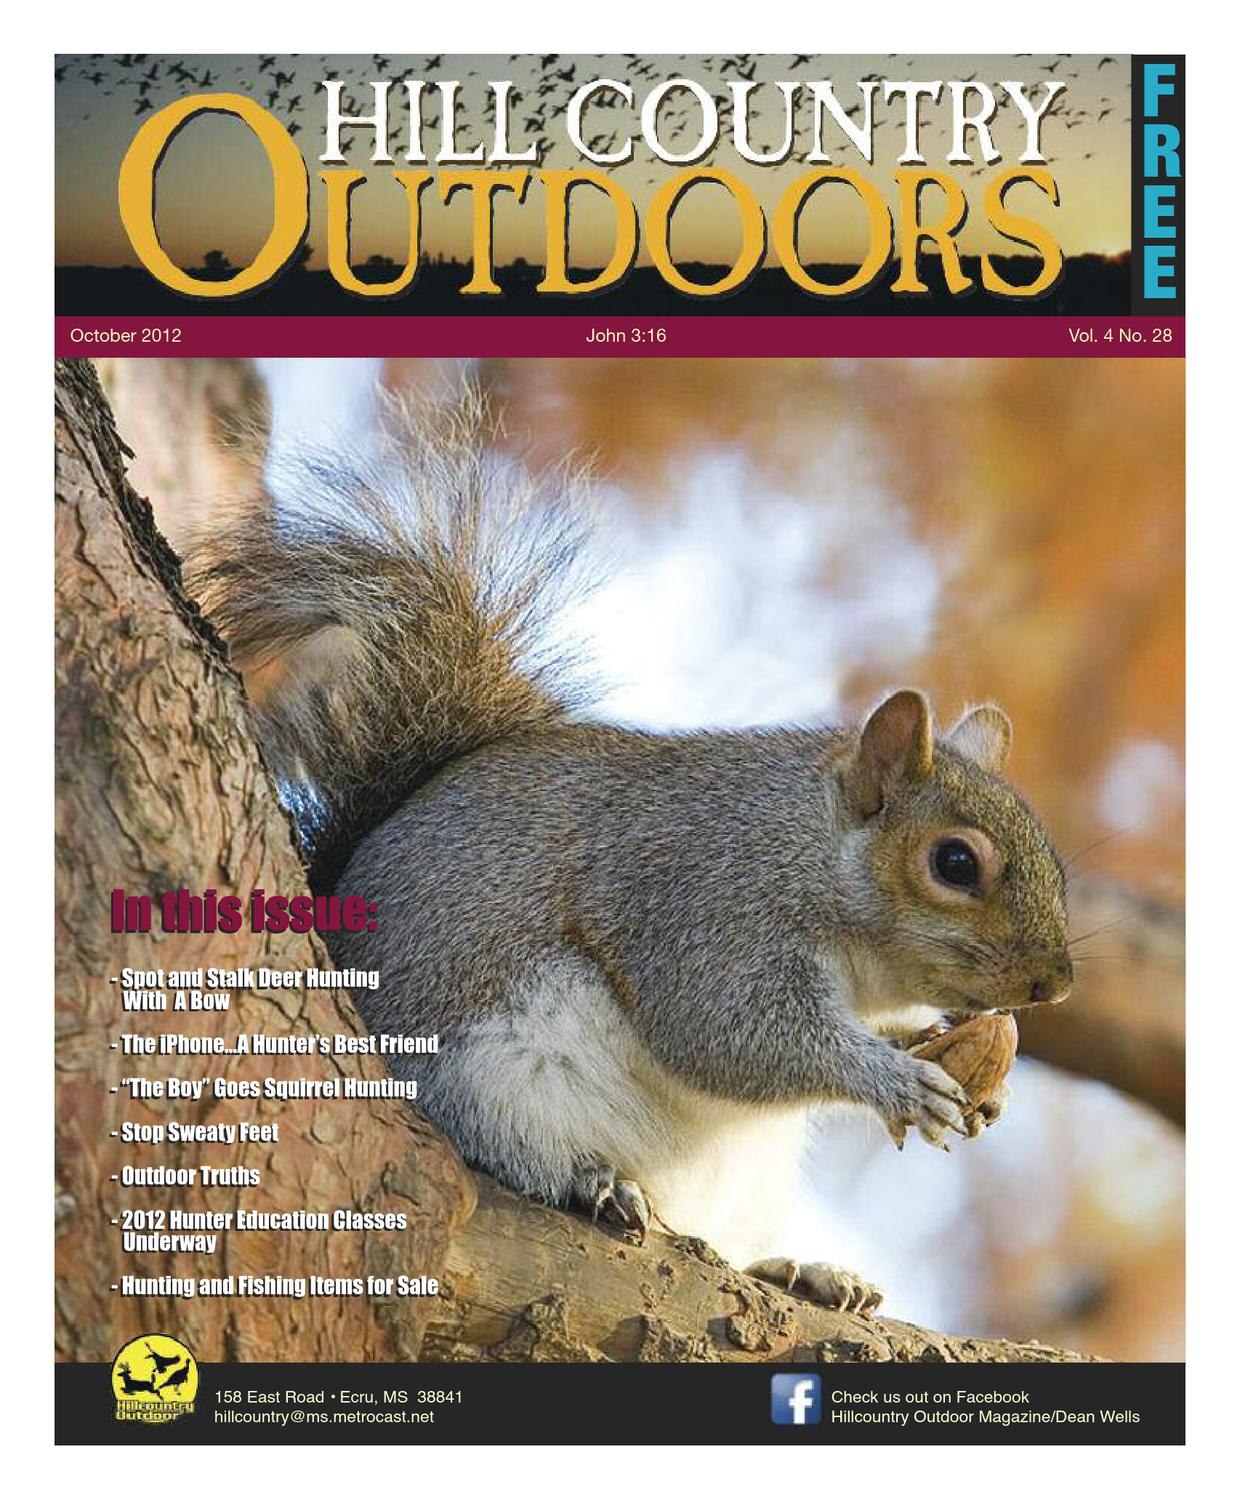 ec955aea18d Hill Country Outdoors October Issue. by Mississippi Hill Country ...